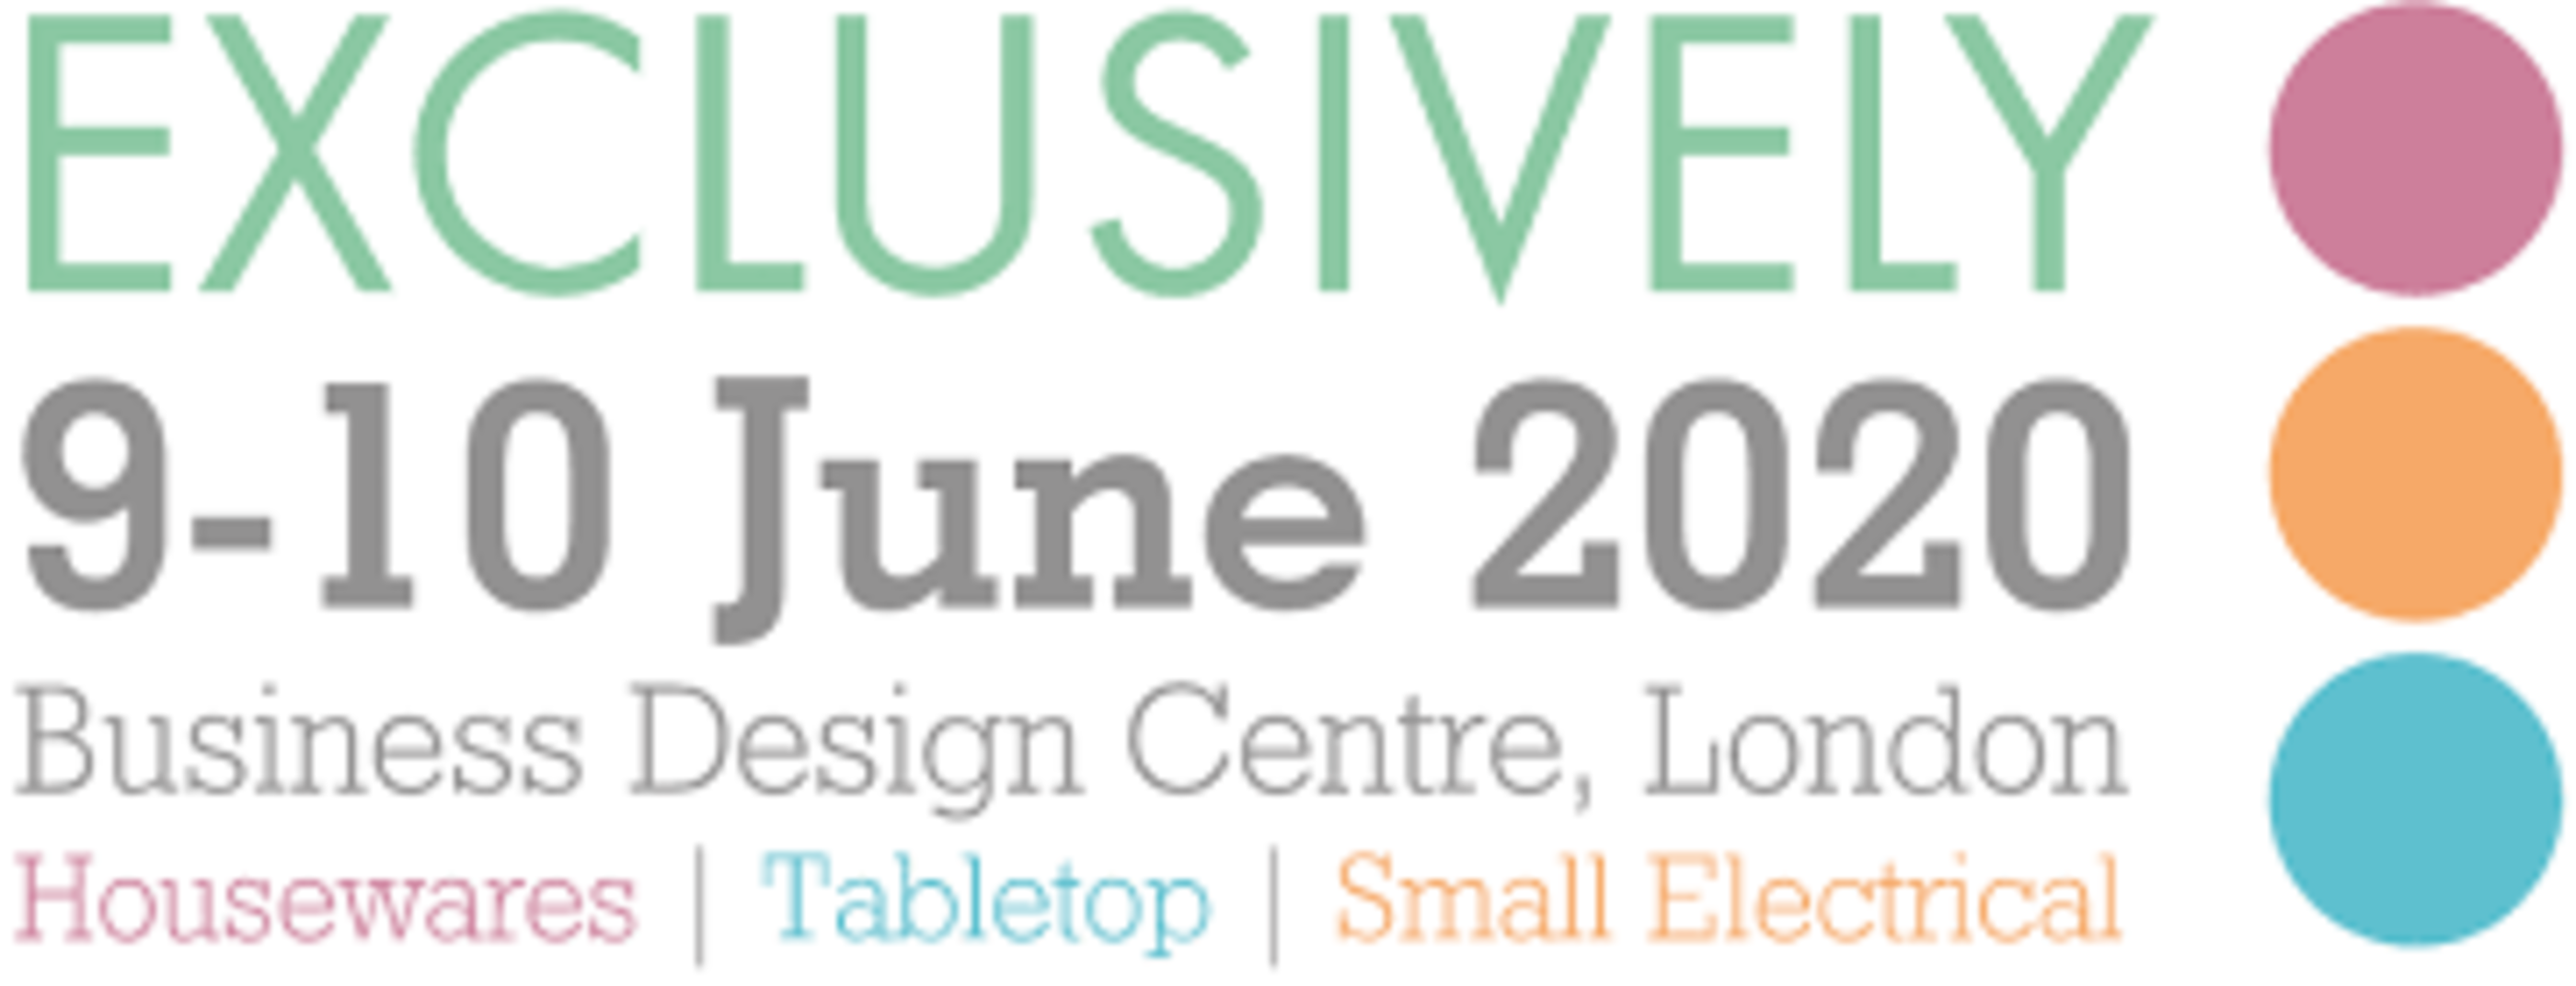 Londres_Exclusively_Housewares_show_2020_Jean_Dubost